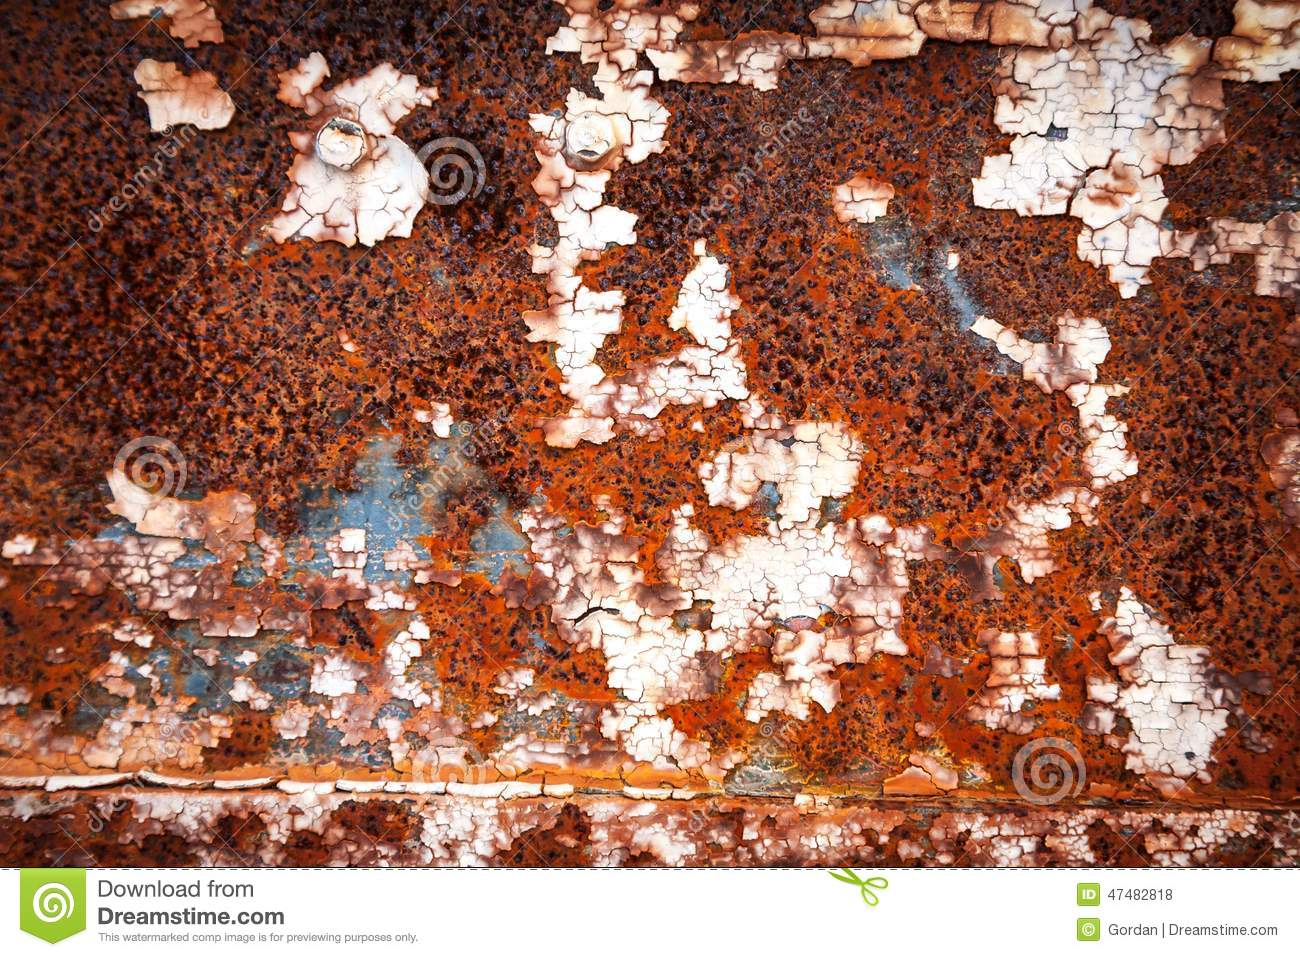 grunge rusty background texture - photo #48